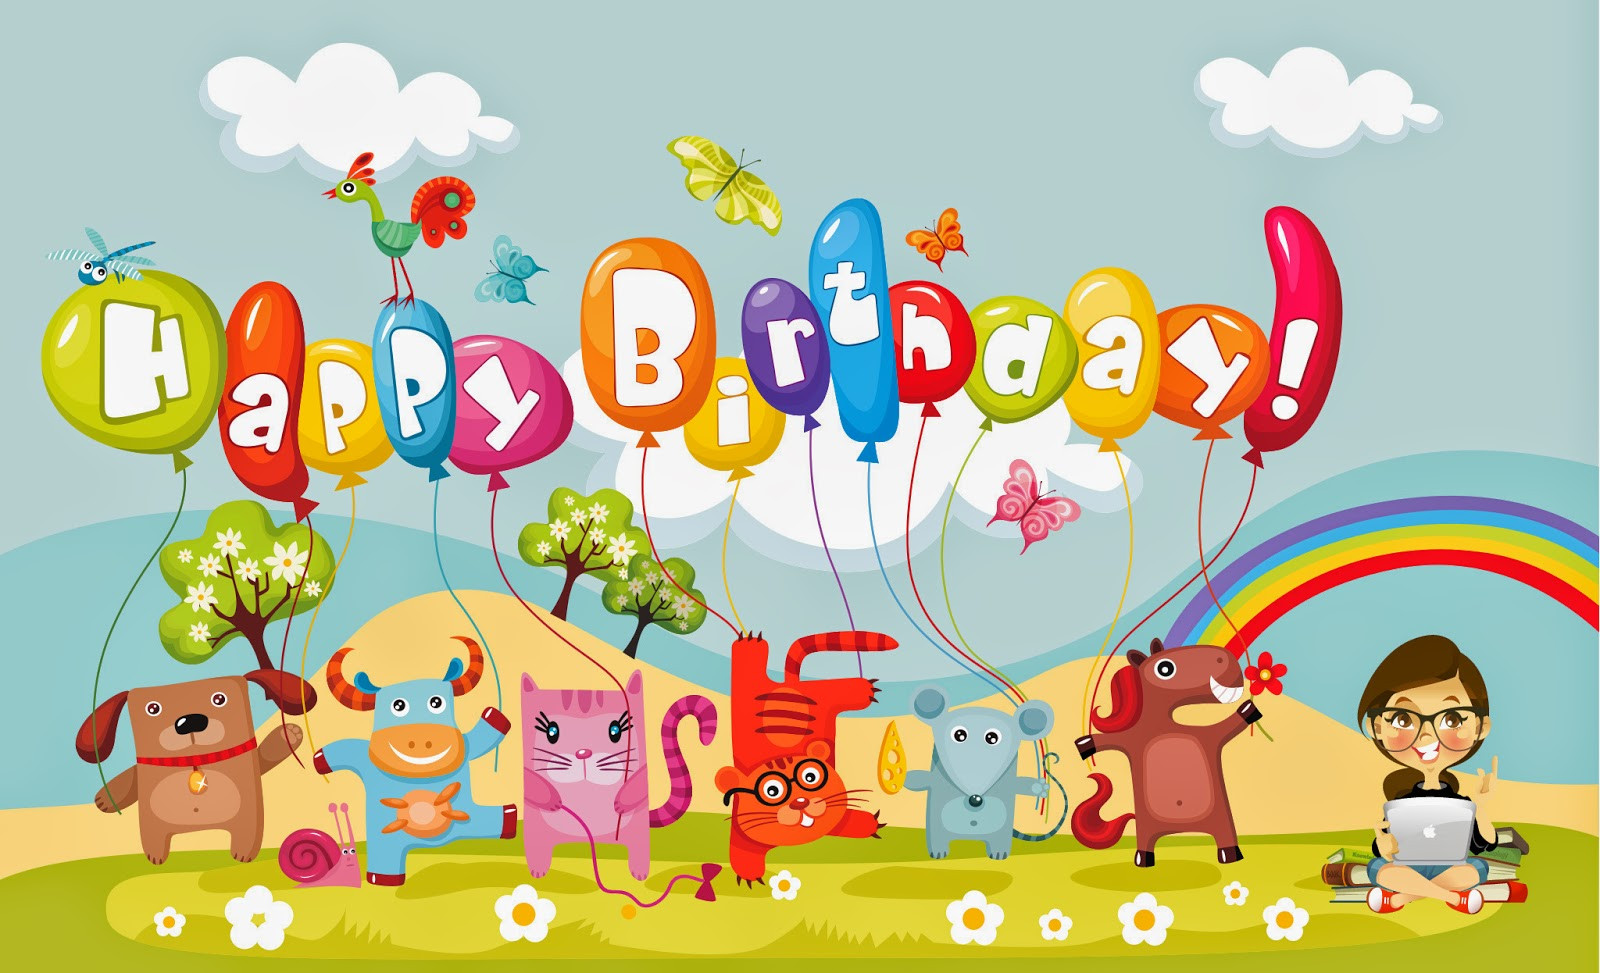 Best ideas about Happy Birthday Wishes For Kids . Save or Pin Happy Birthday wishes card images with cakes candles Now.